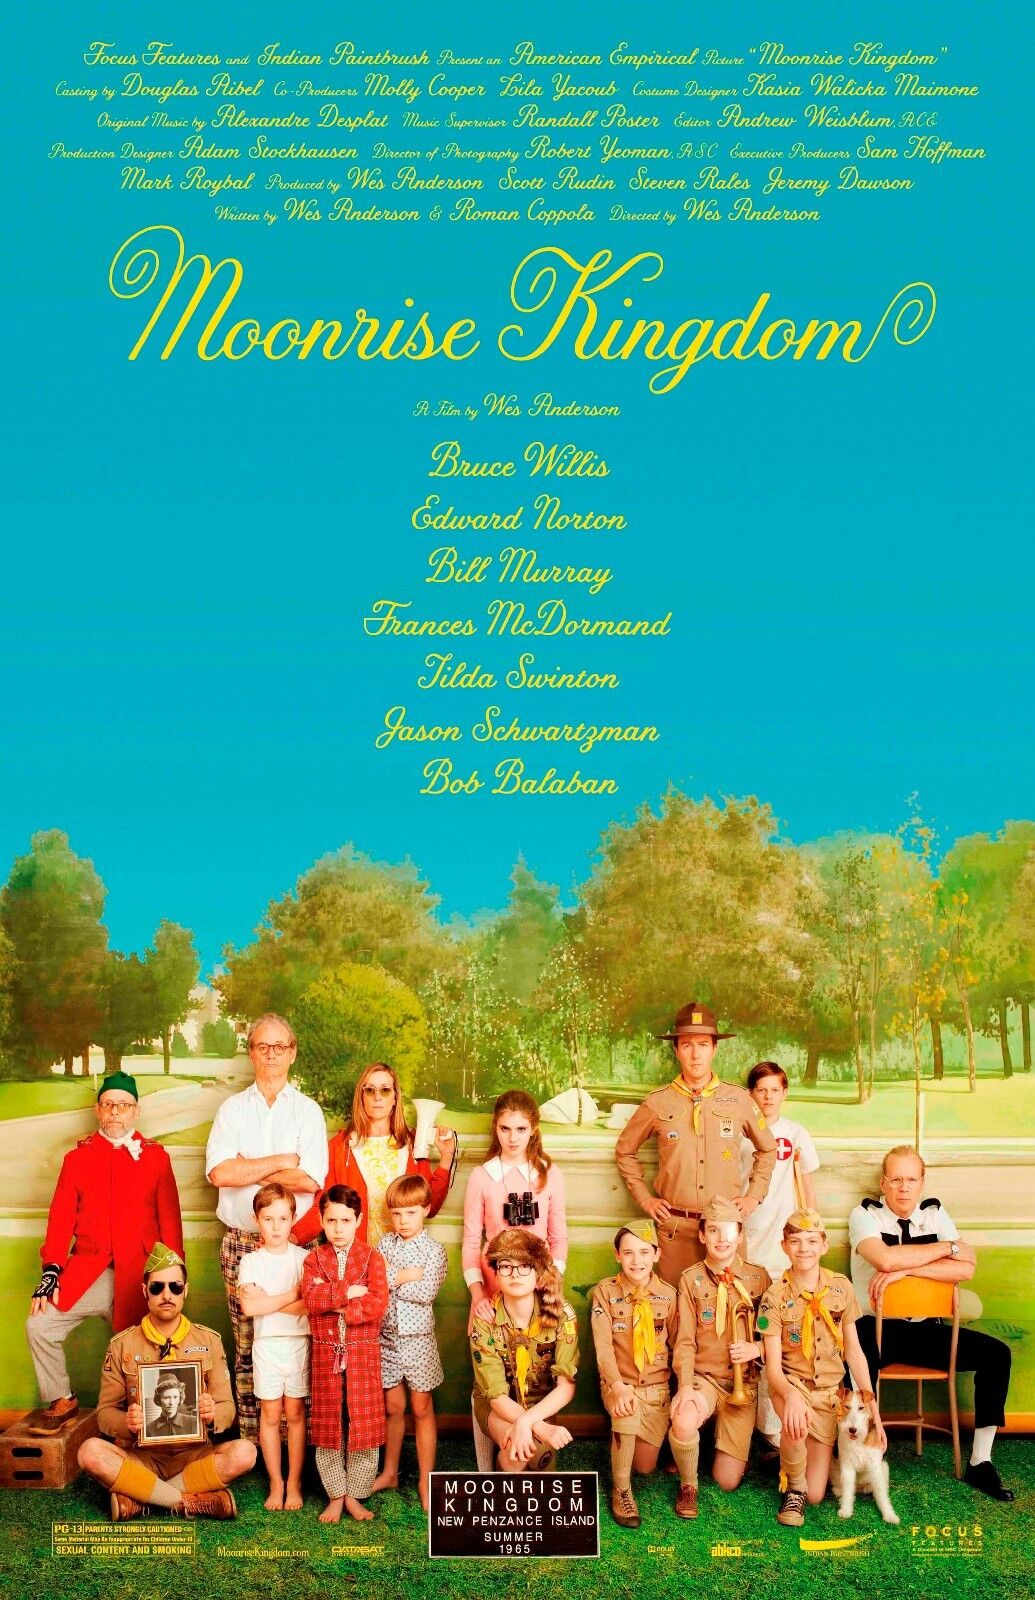 Moonrise Kingdom movie poster (b) - 11 x 17 inches - Wes Anderson